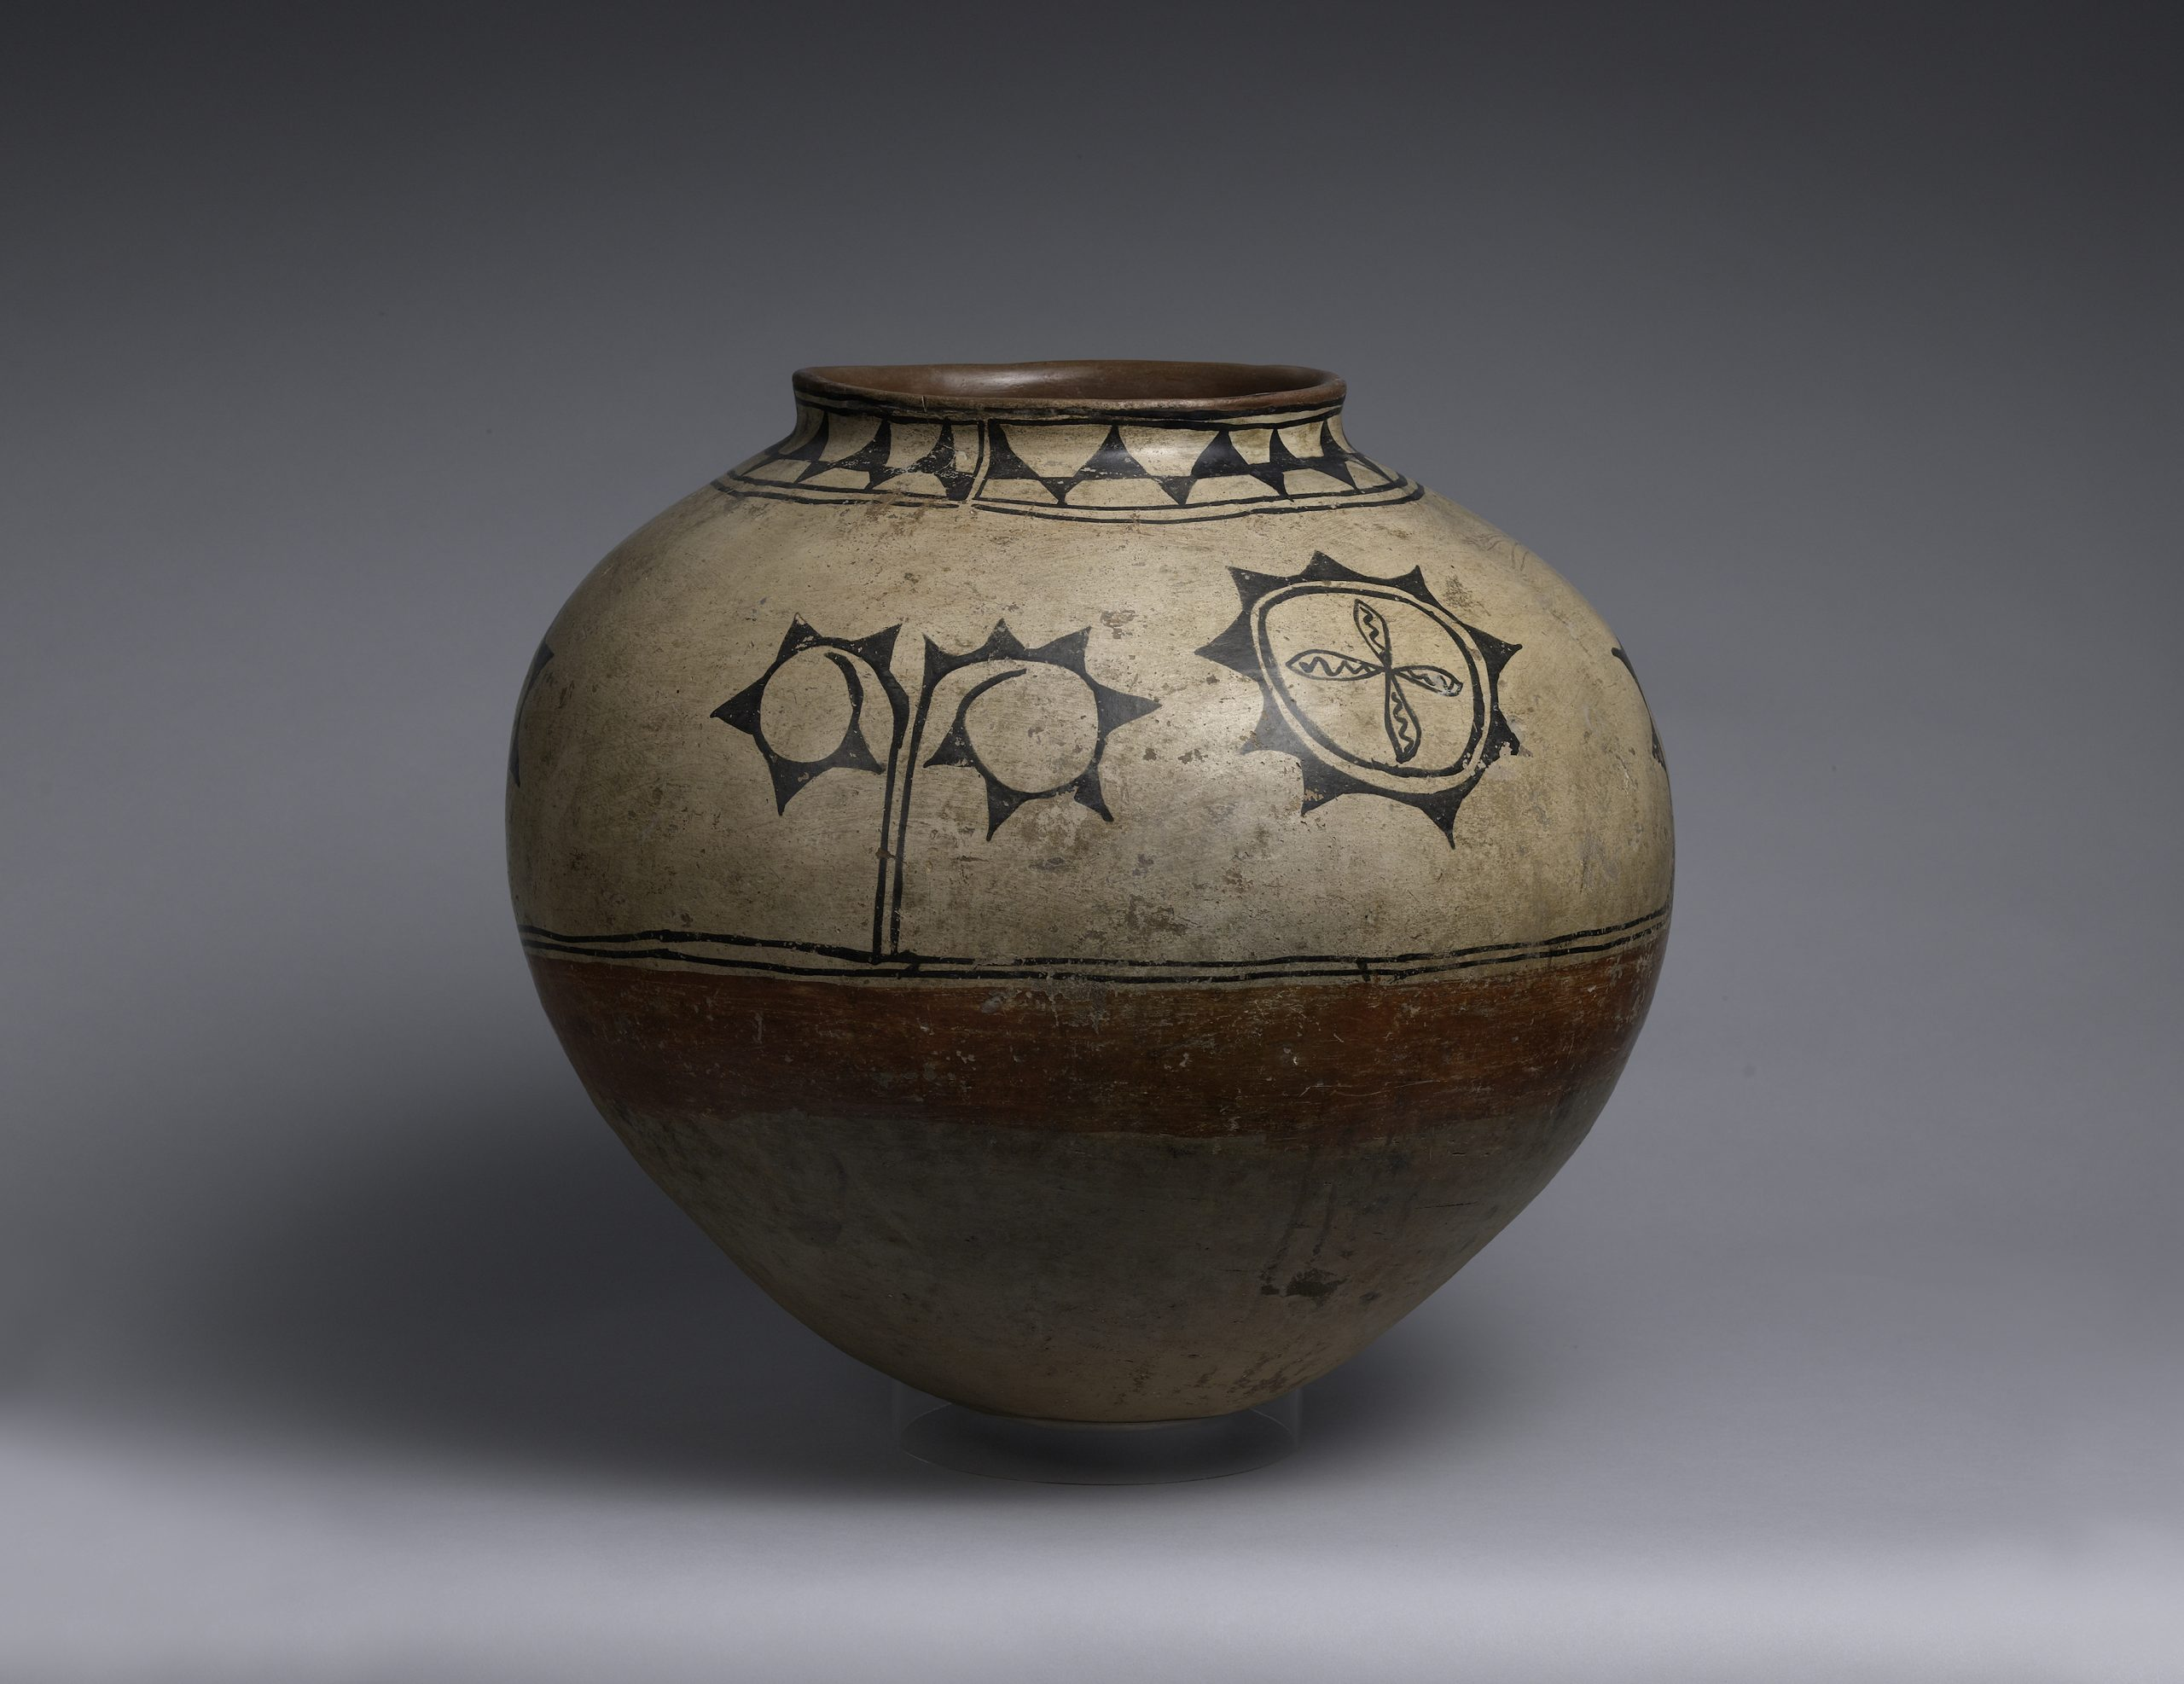 A Cochiti storage jar decorated with geometric and plant designs.